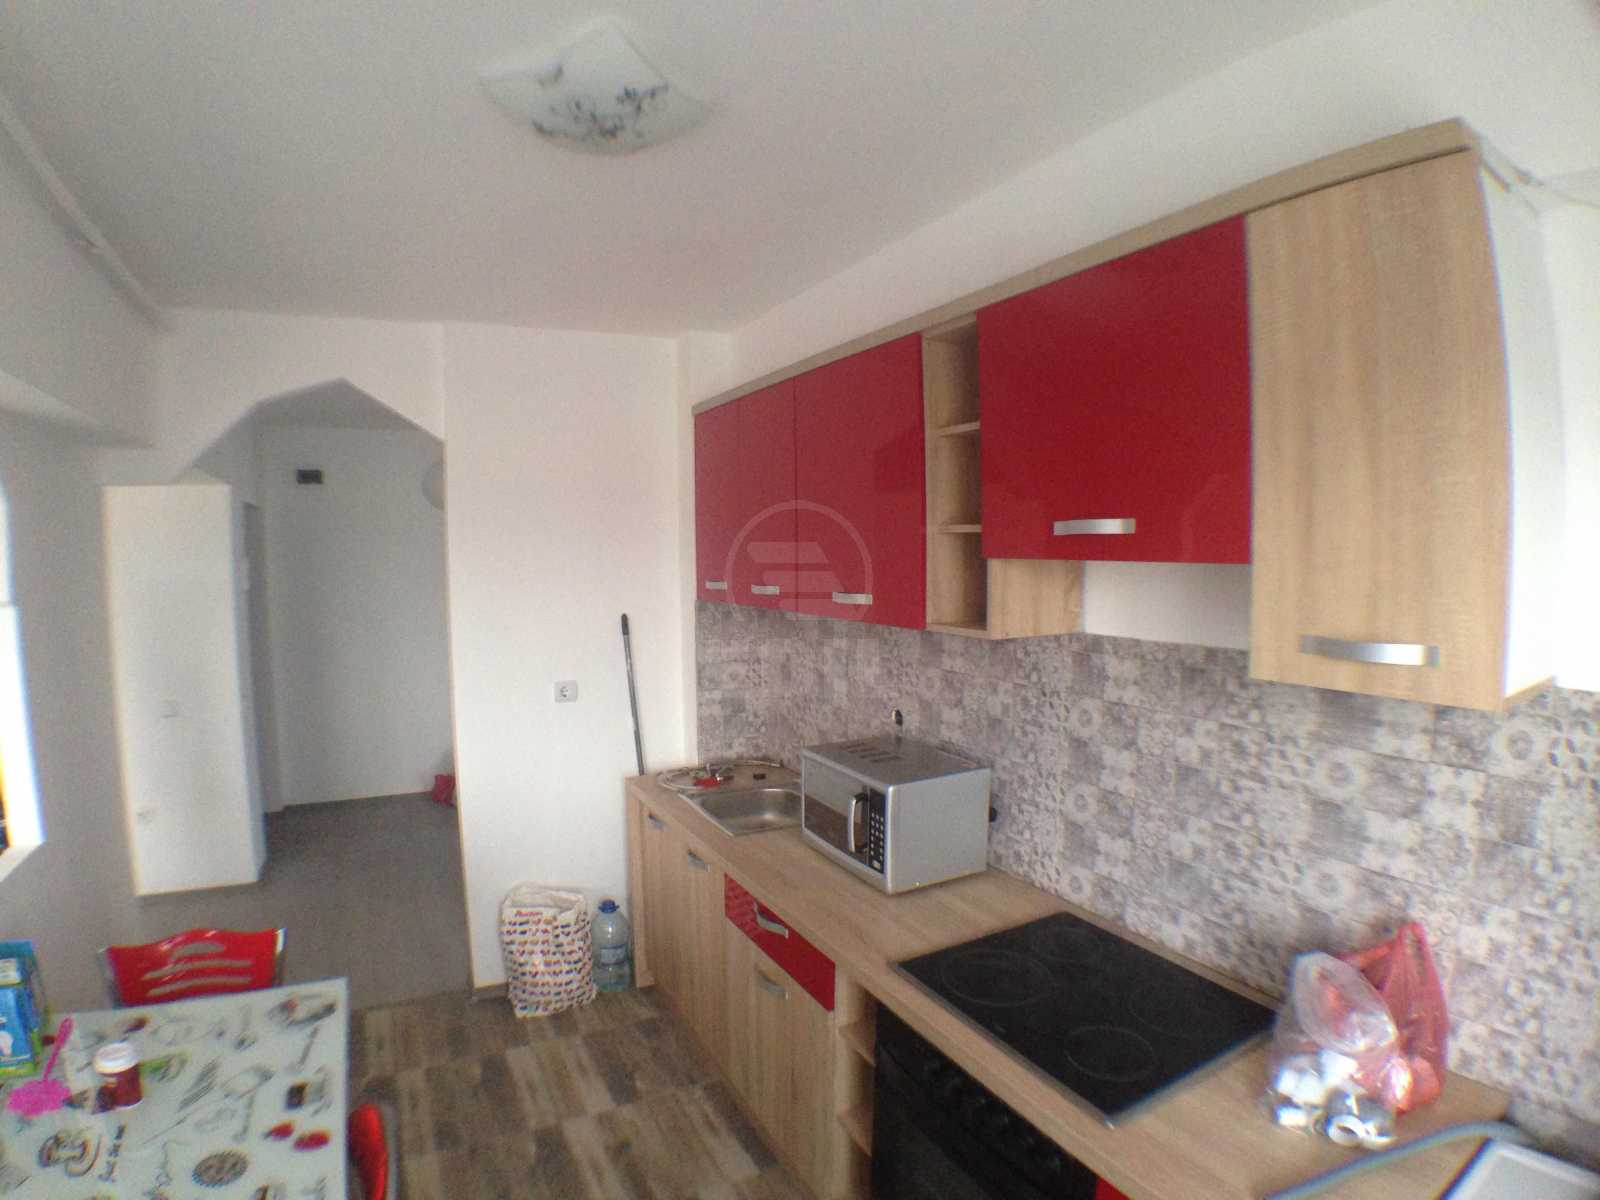 Apartment for rent 2 rooms, APCJ232550FLO-6